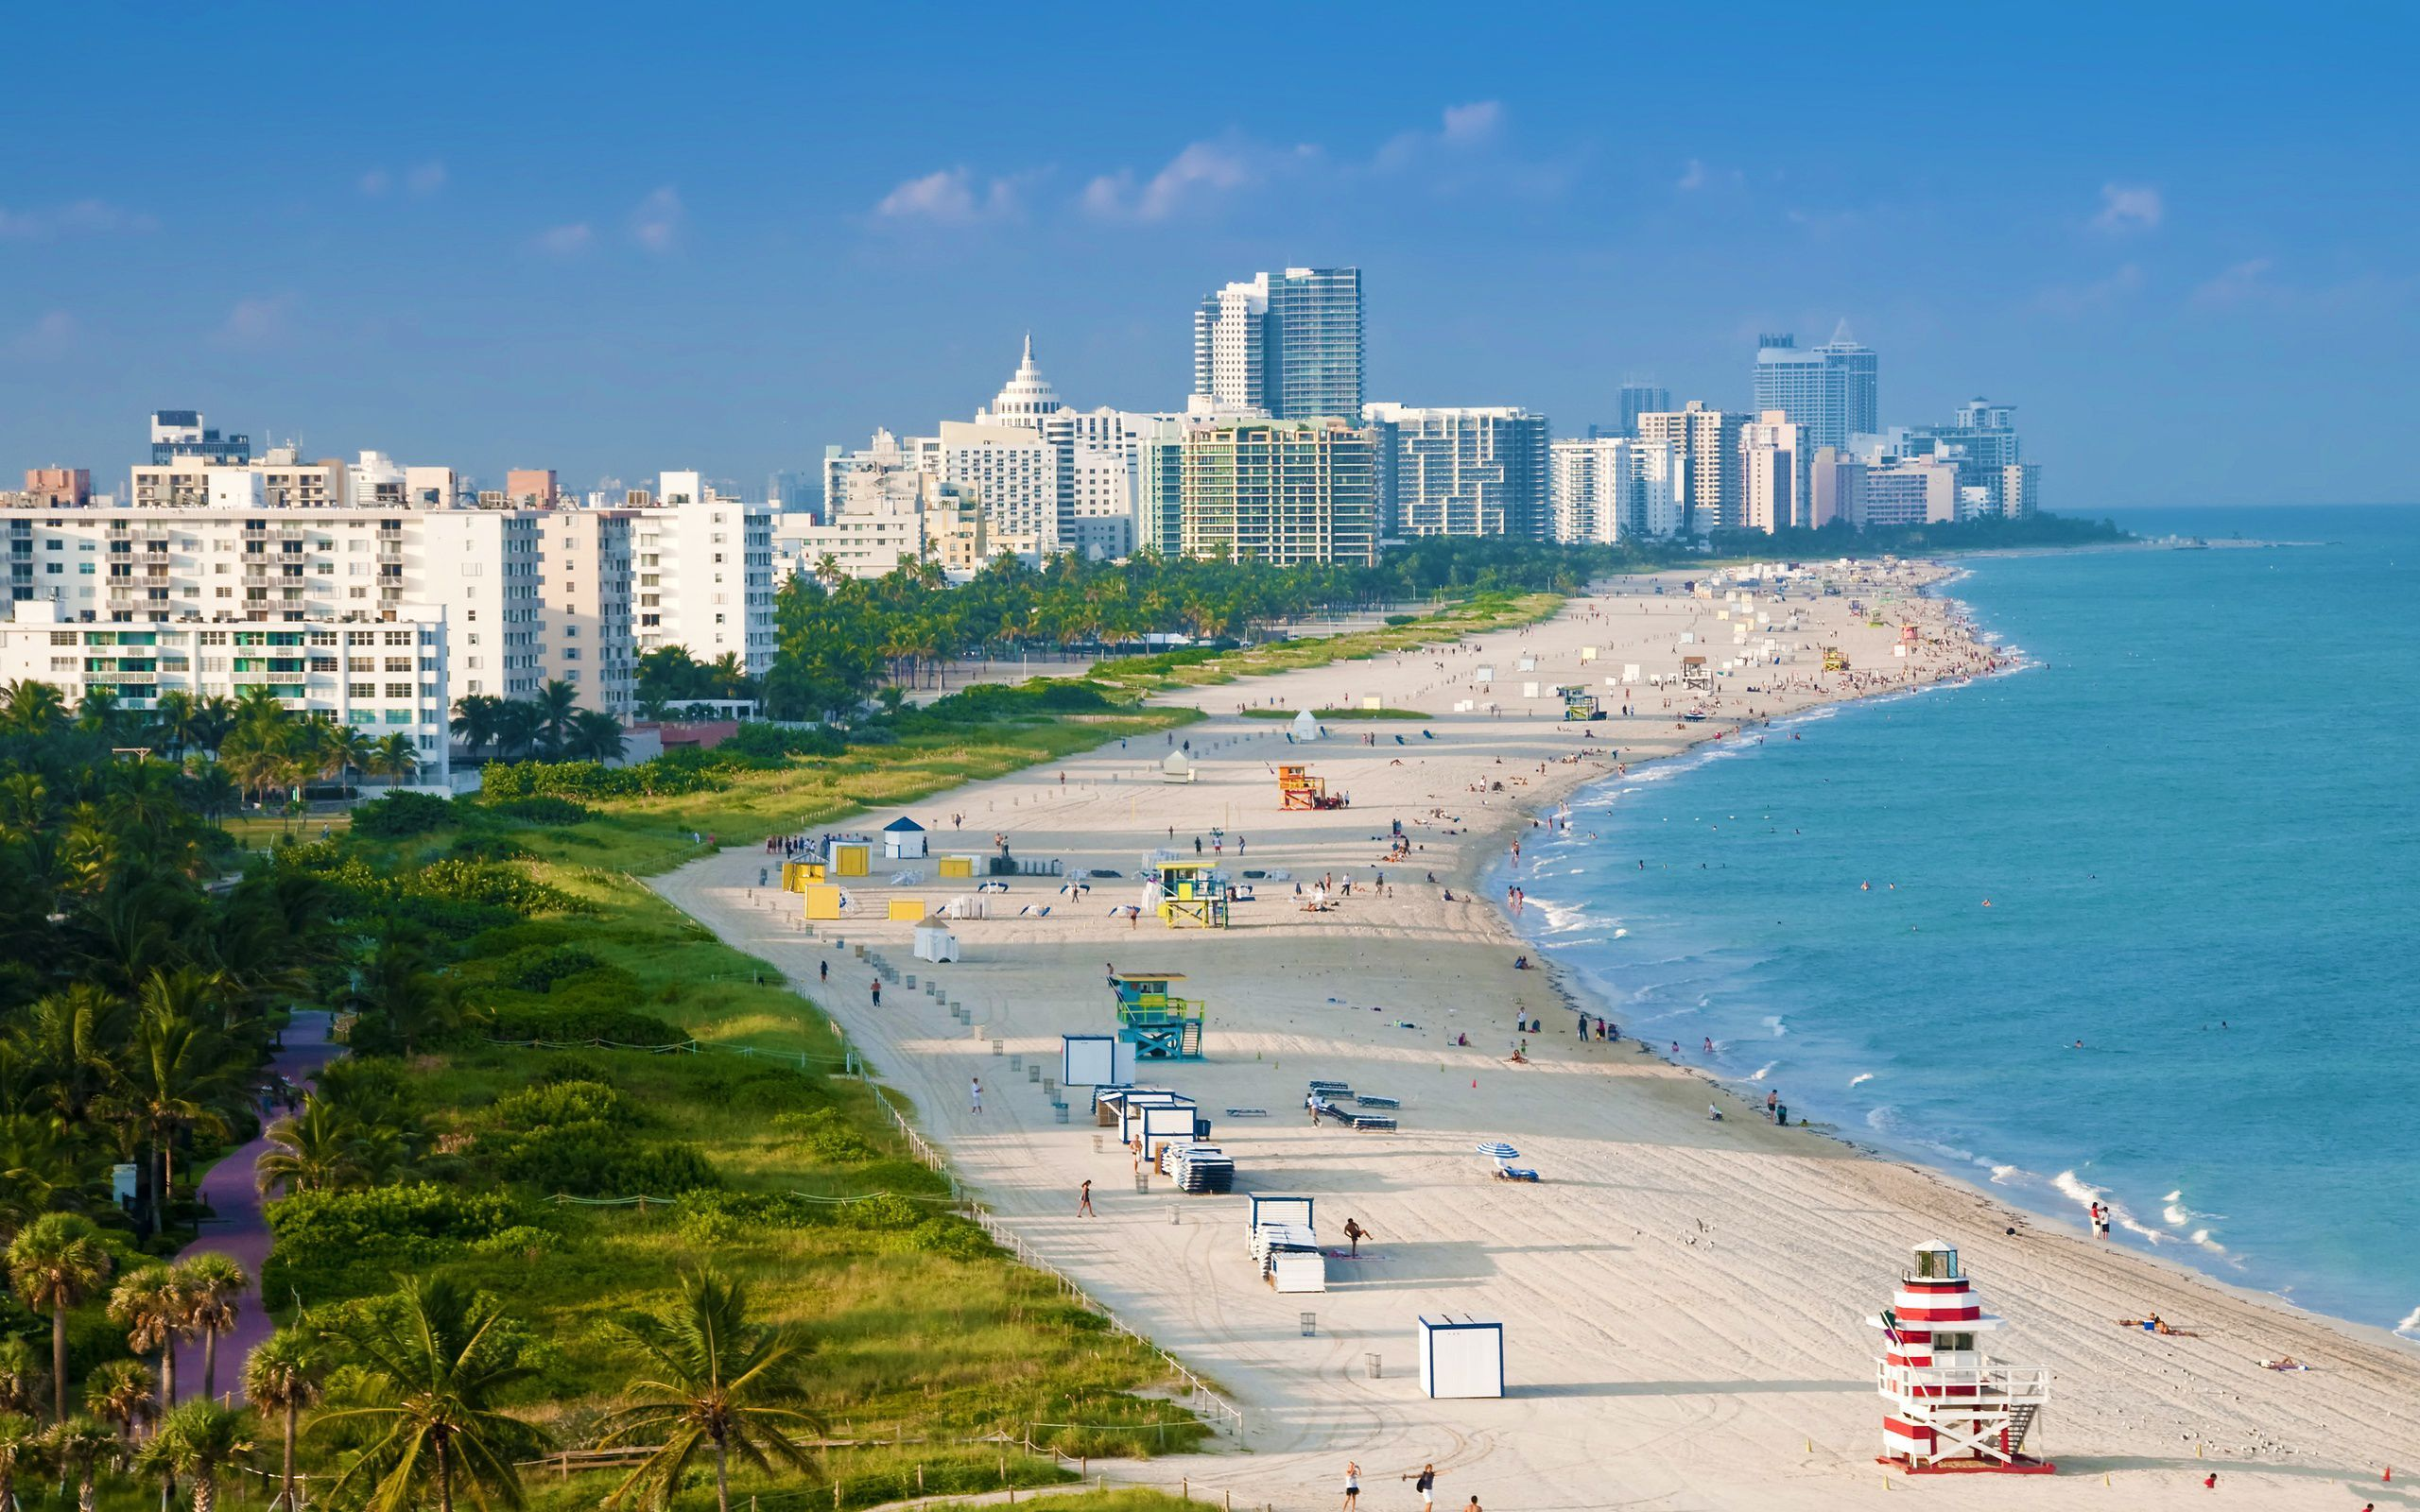 Discover the best south beach miami beach fl usa vacation rentals homeaway offers the perfect alternative to hotels